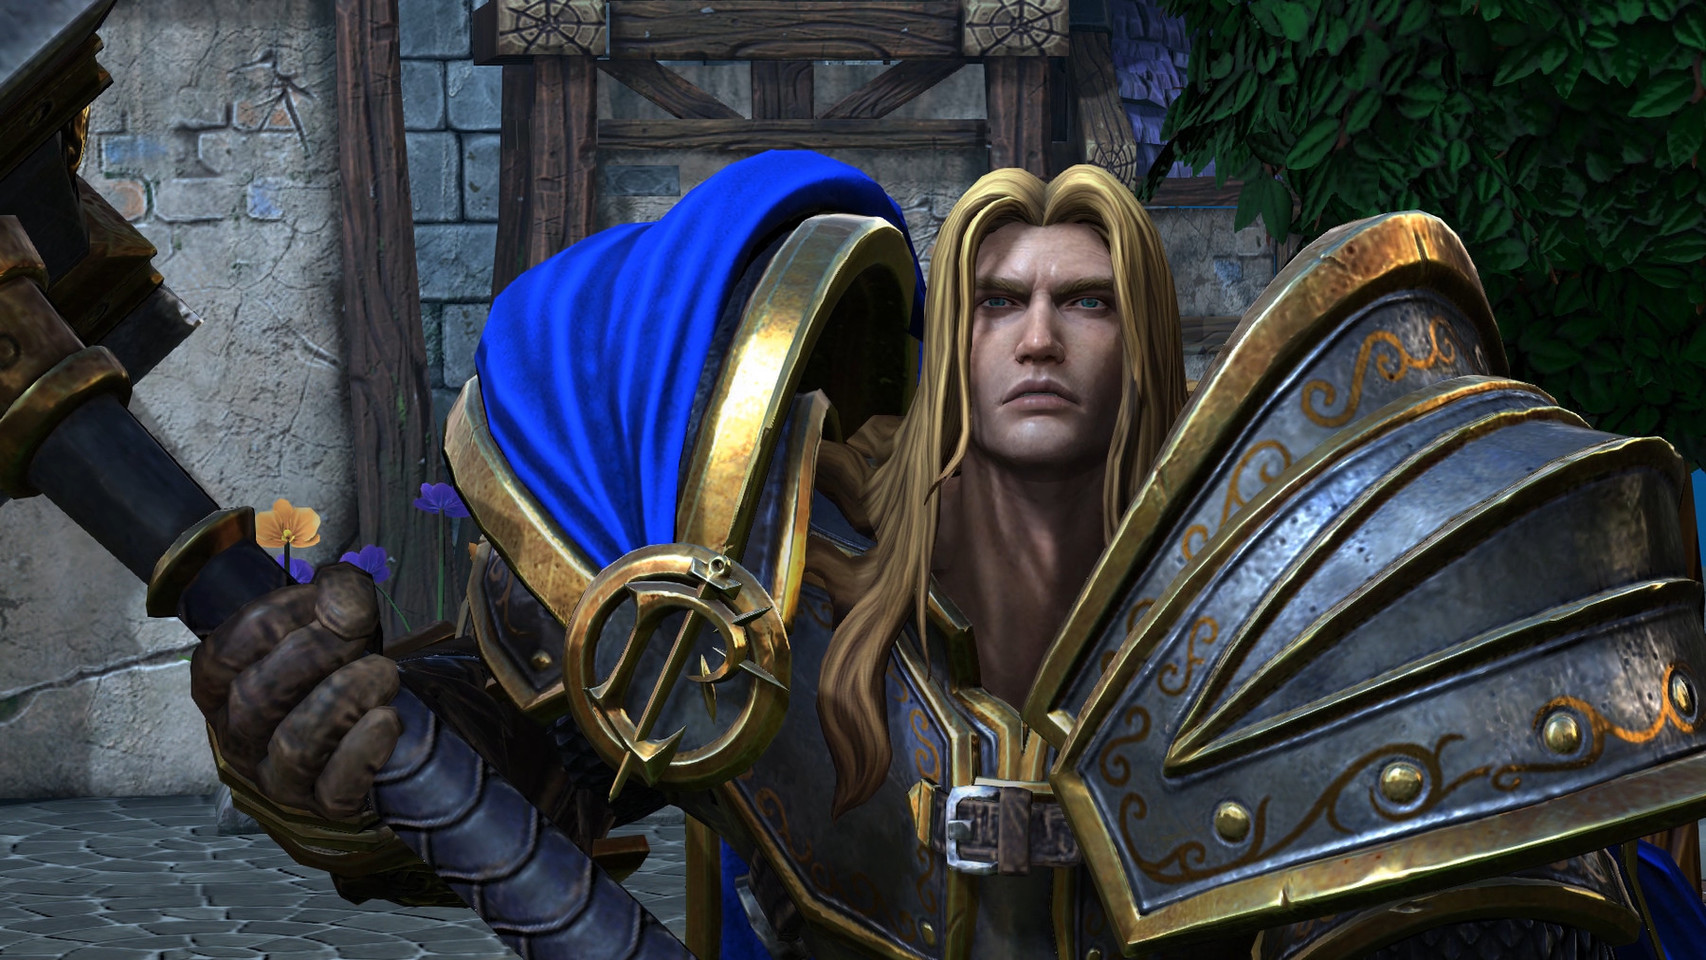 Blizzard Remasters Warcraft III, Releases 2019 as Warcraft